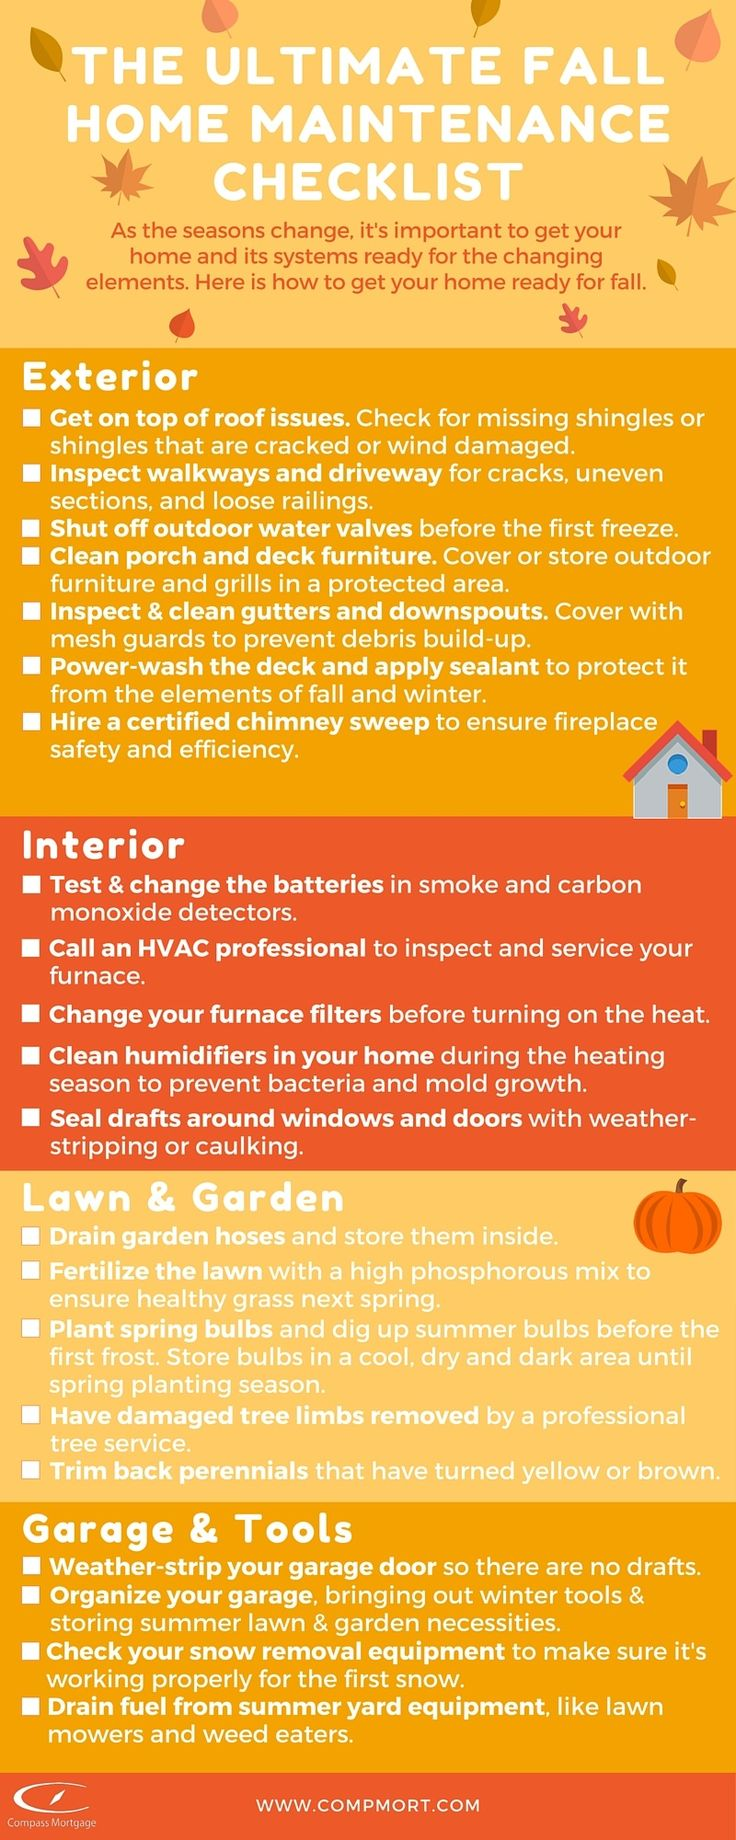 Car Inspection Checklist >> The Ultimate Fall Home Maintenance Checklist | Homeowner Tips | Pinterest